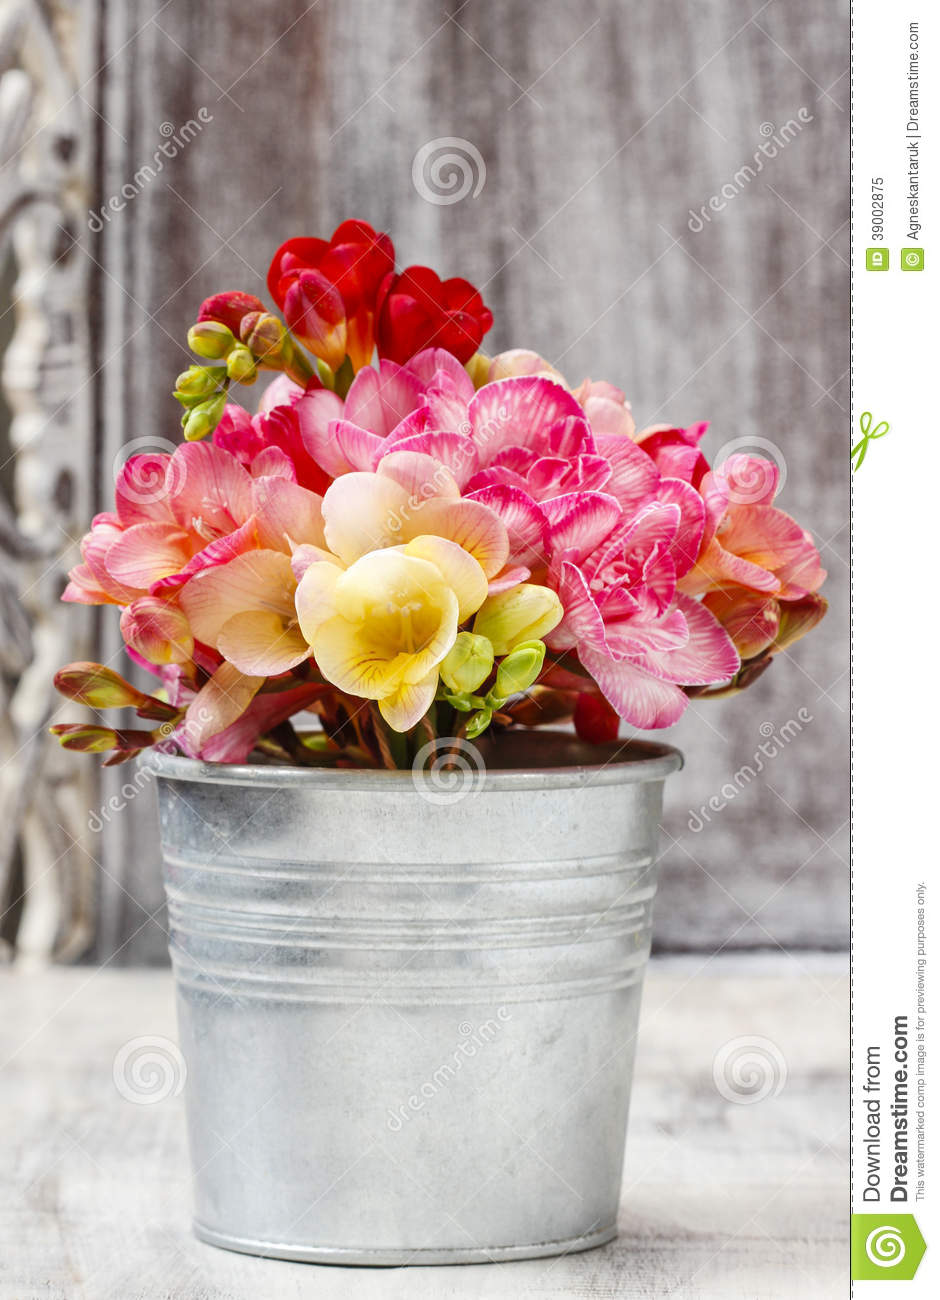 Bouquet of colorful freesia flowers stock image image for Bucket of flowers papercrafting